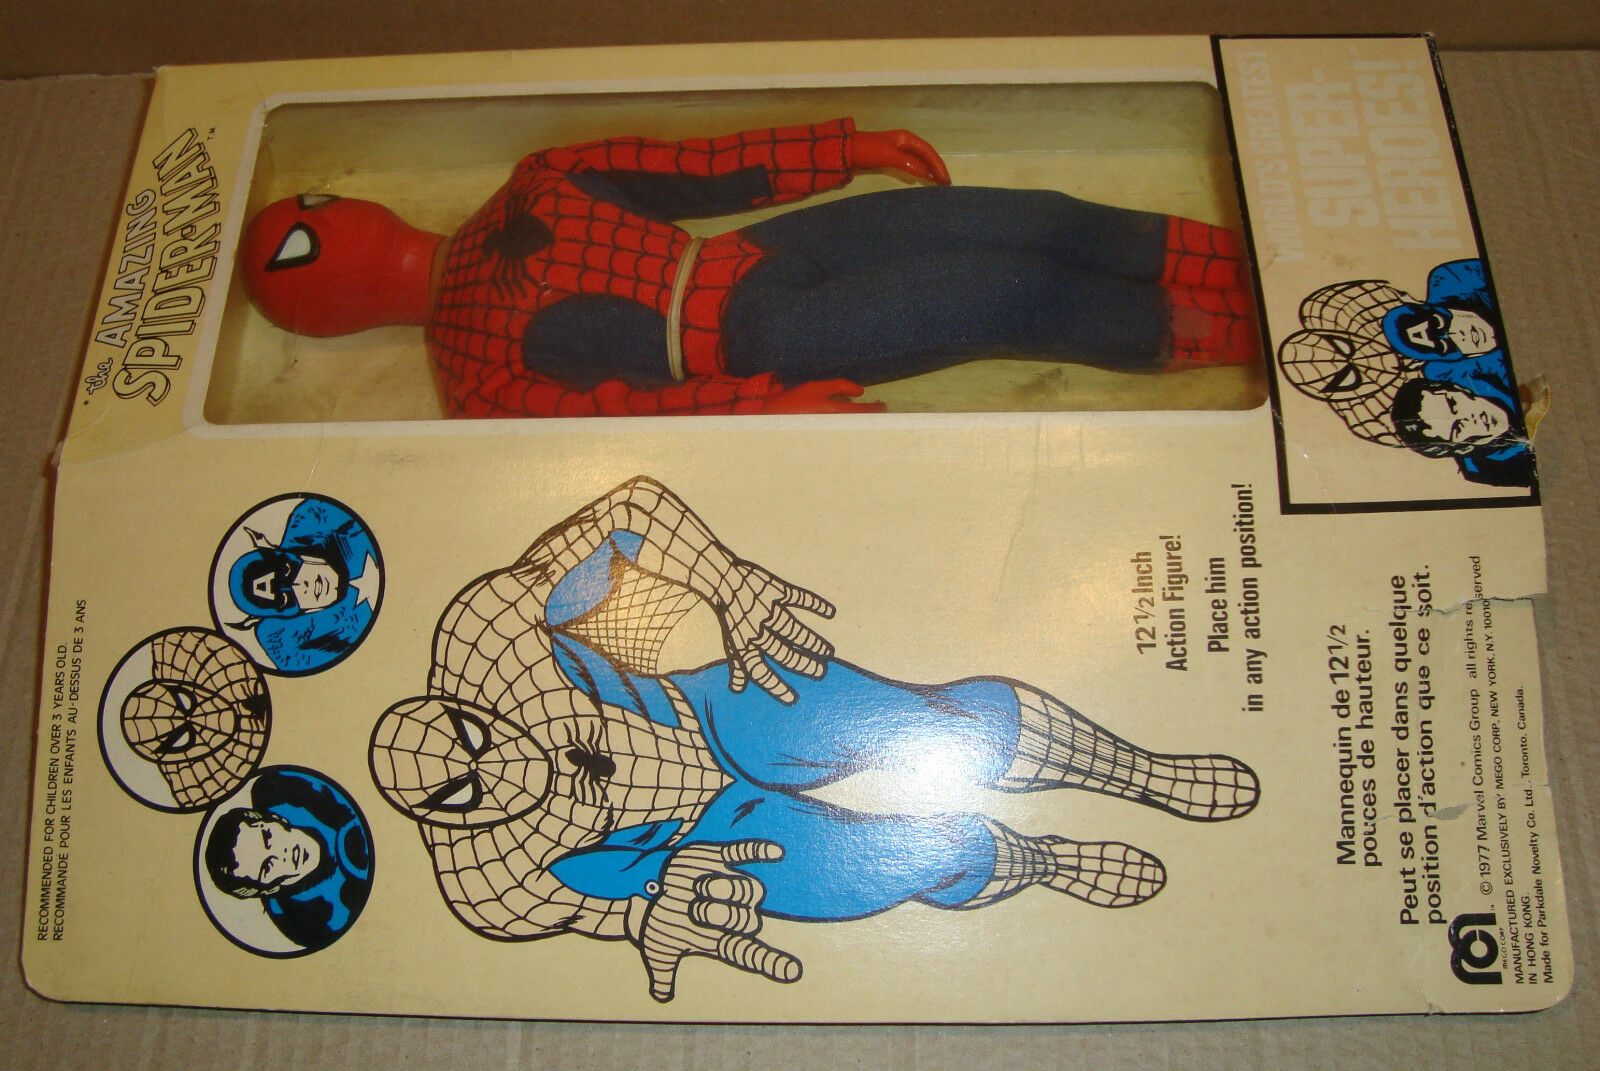 Mego World's Greatest Super-Heroes The Amazing Spider-Man 12 1 2 Inch Mego Corp